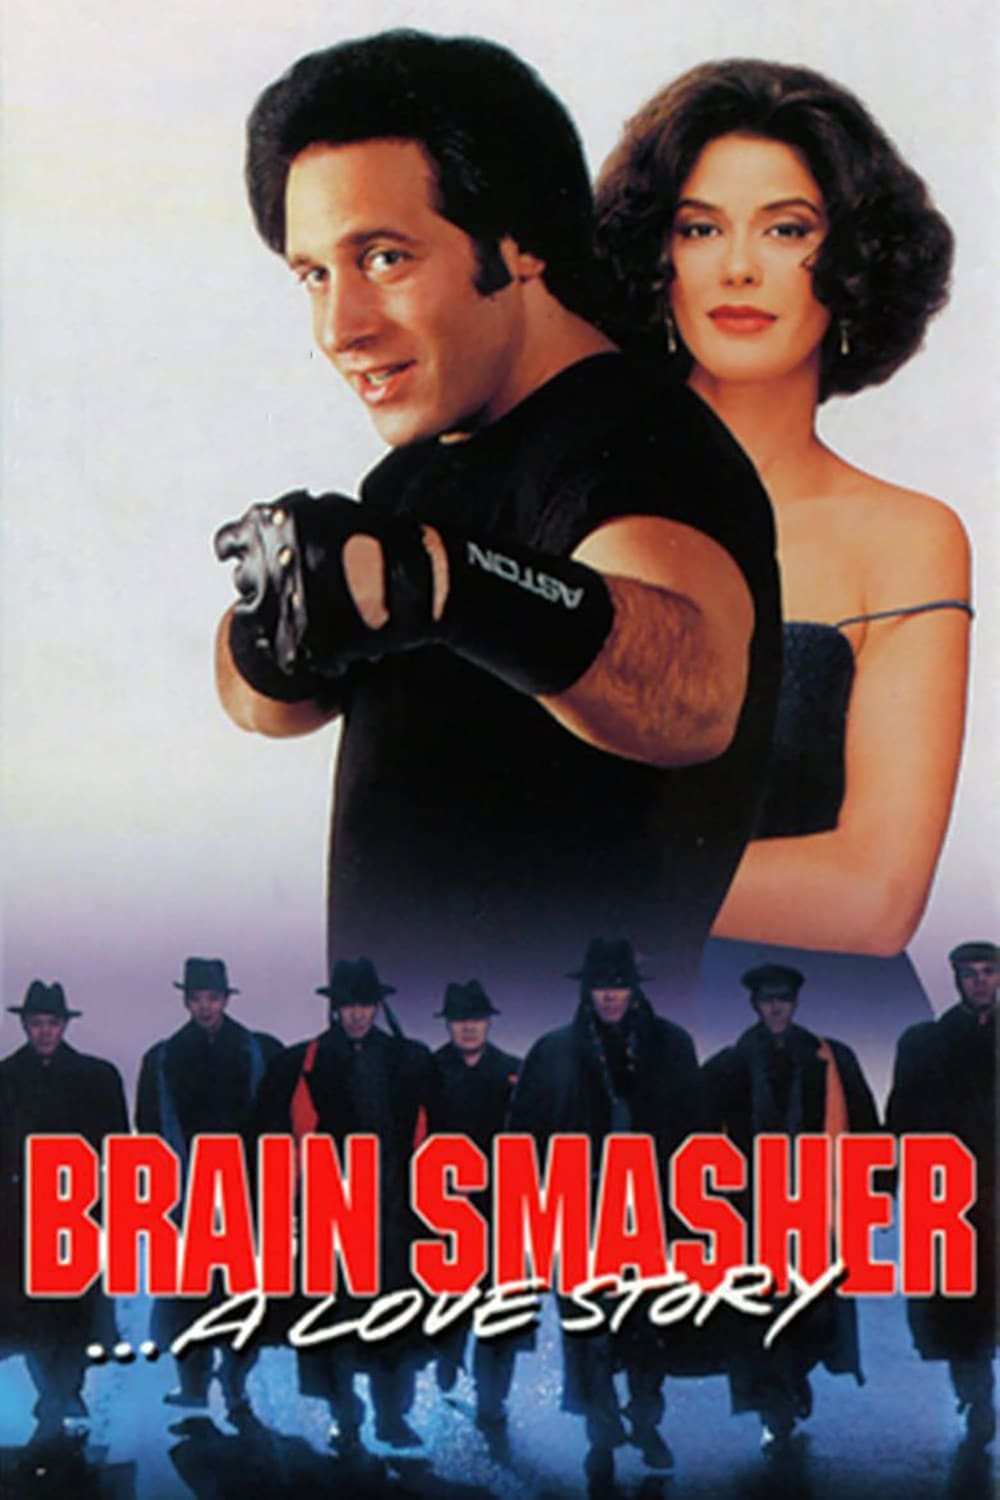 Brain Smasher... A Love Story (1993)